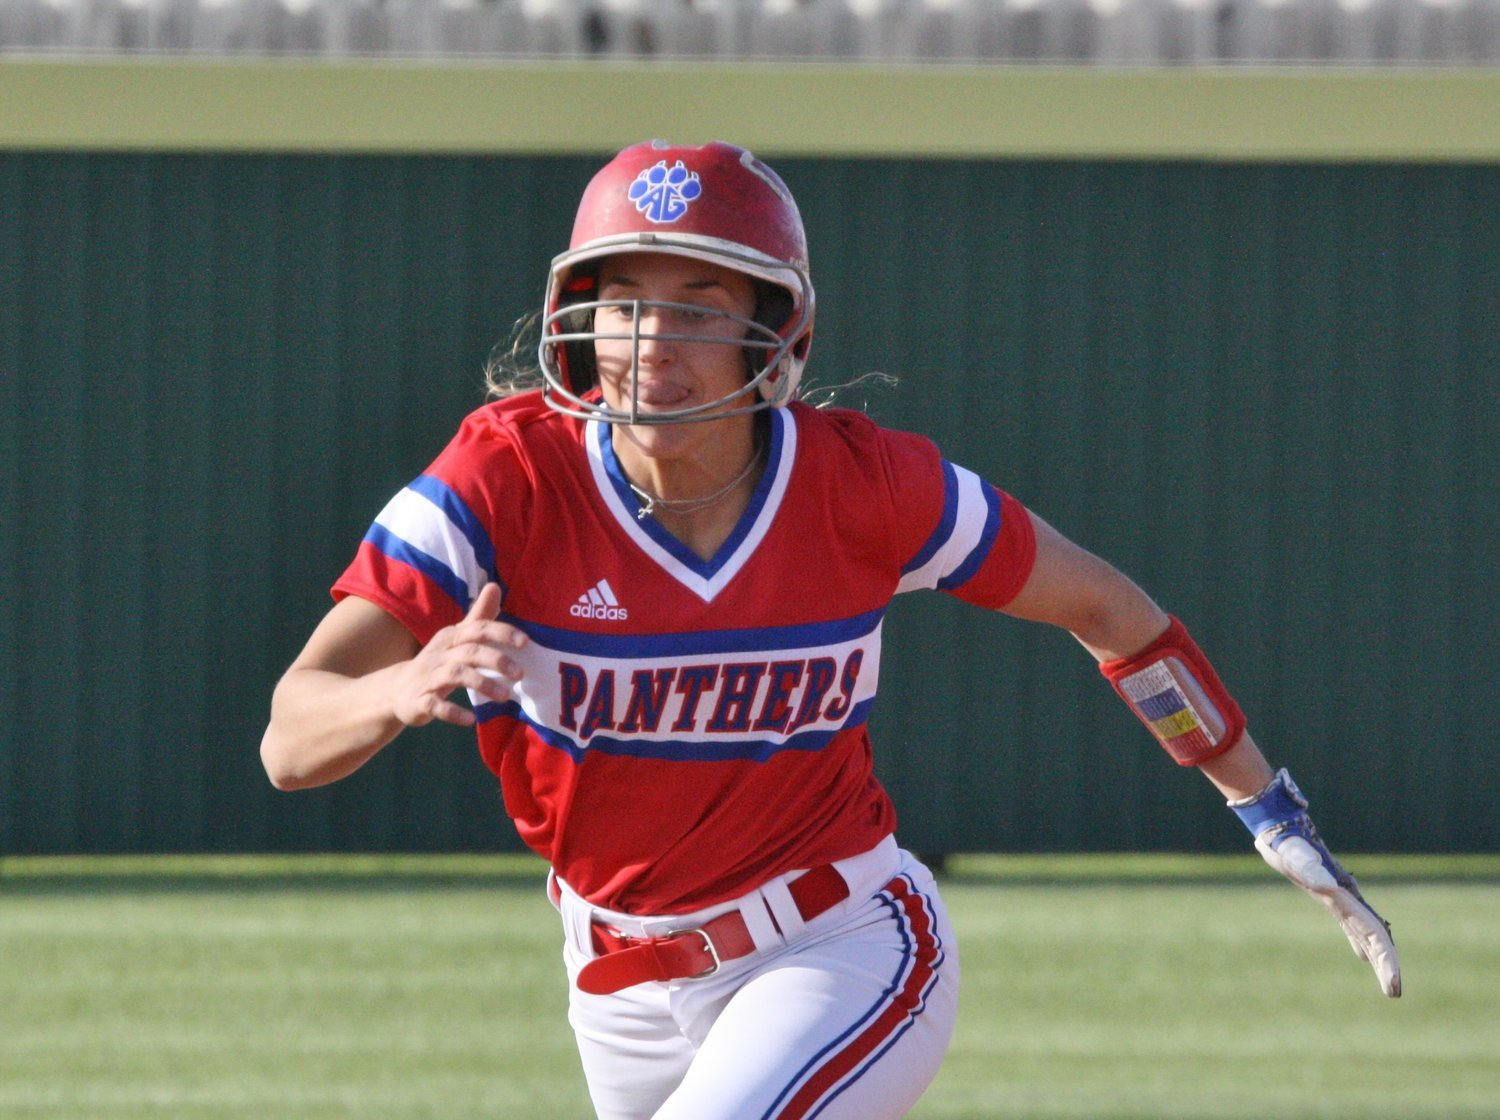 Lady Panther Ashlyn Rogers takes off from second on a successful attempt to steal third base.